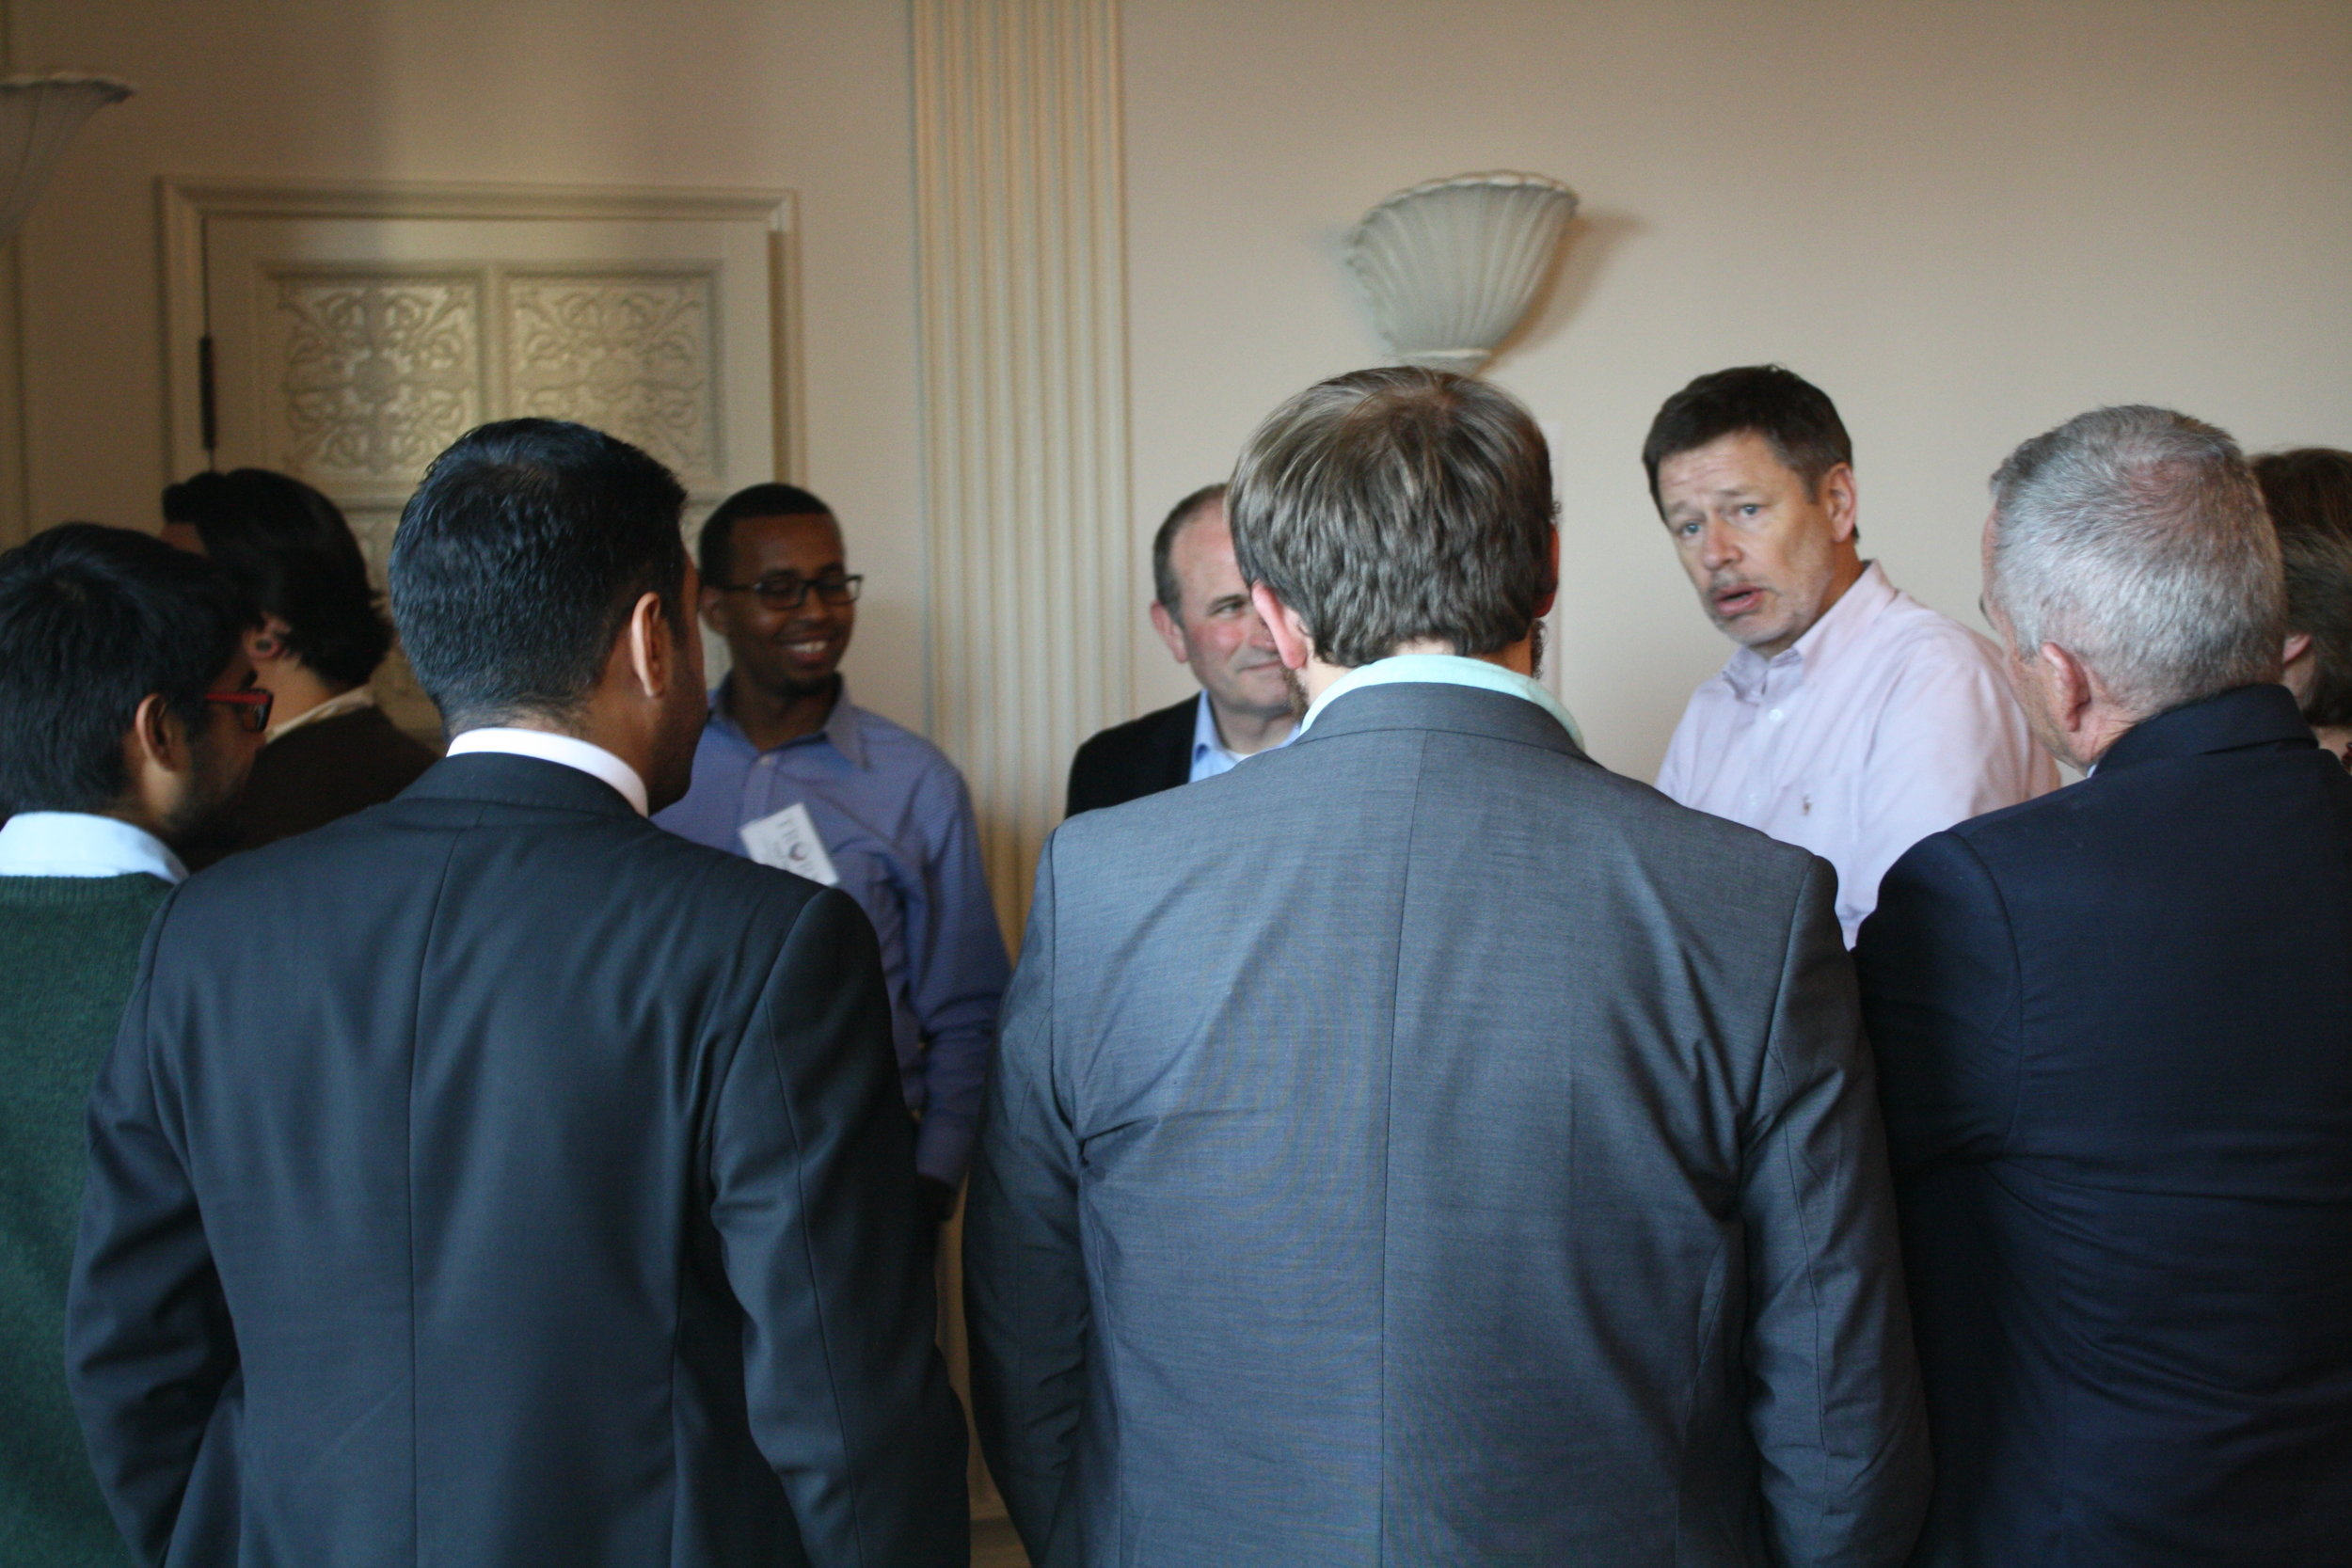 Discussing policy questions with Consul General Schlueter.